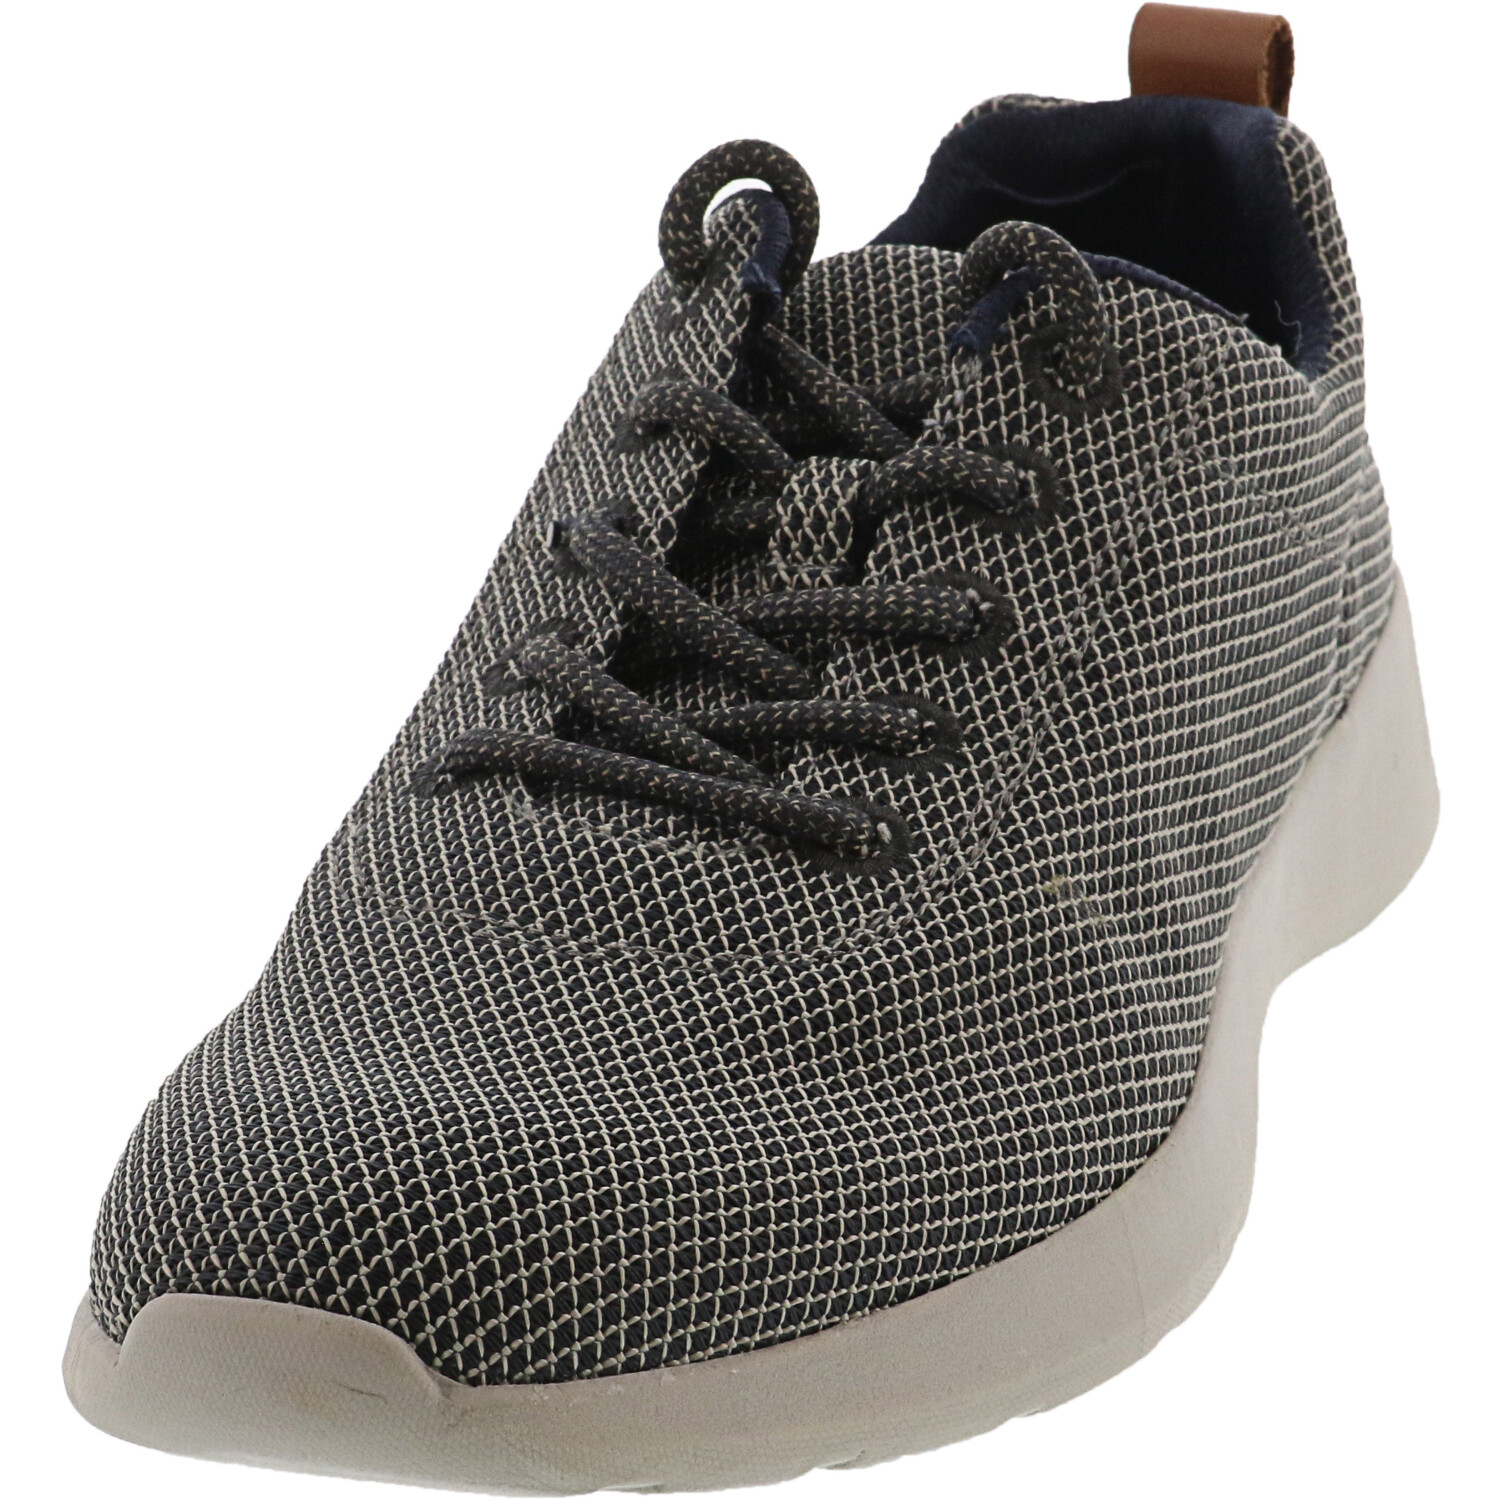 Dr. Scholl's Men's Freestep Grey Ankle-High Sneaker - 8.5M